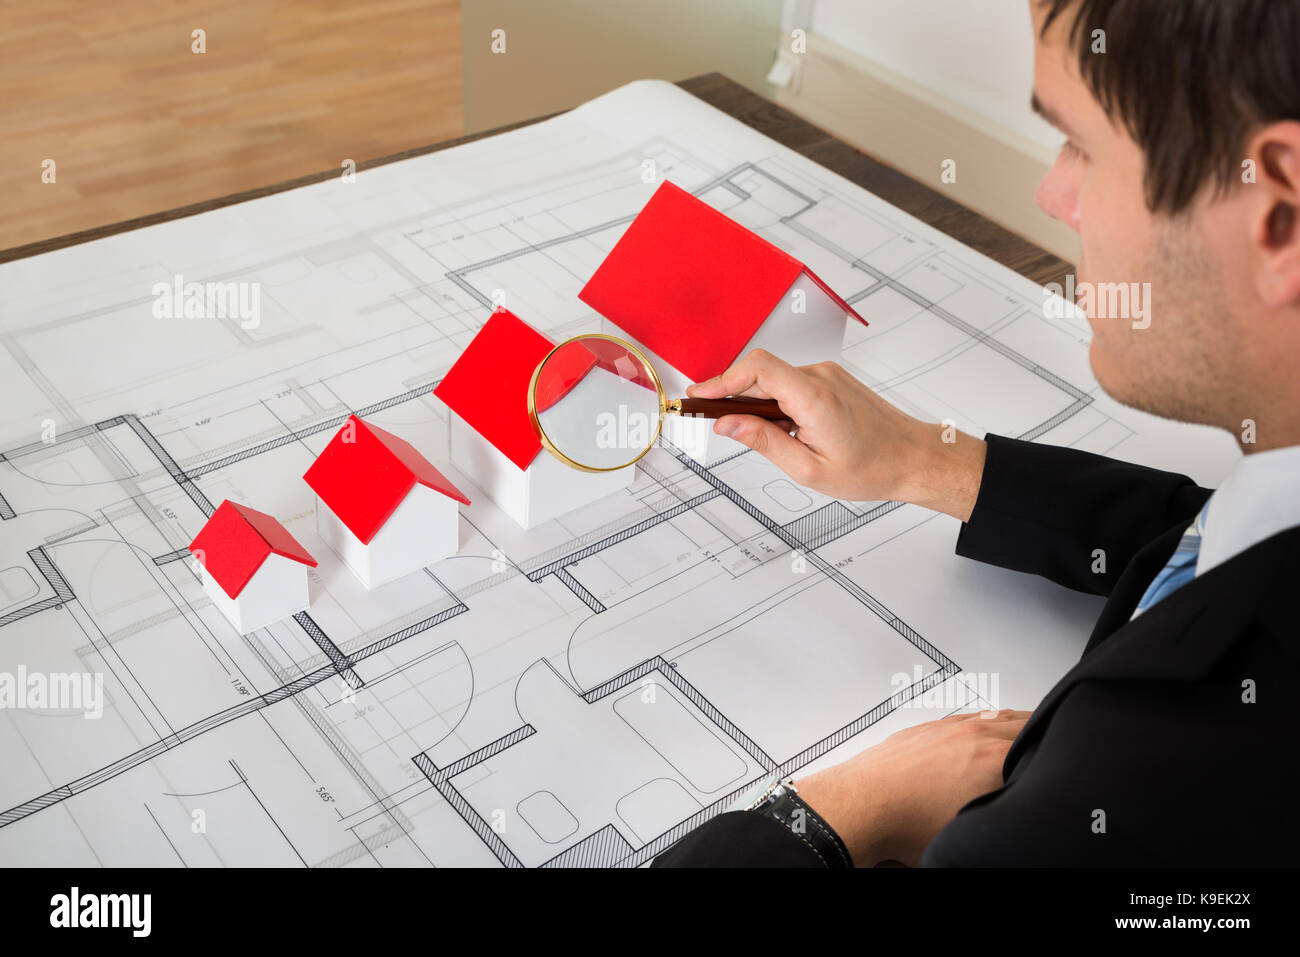 Male Architect Looking At House Models On Blueprint Through